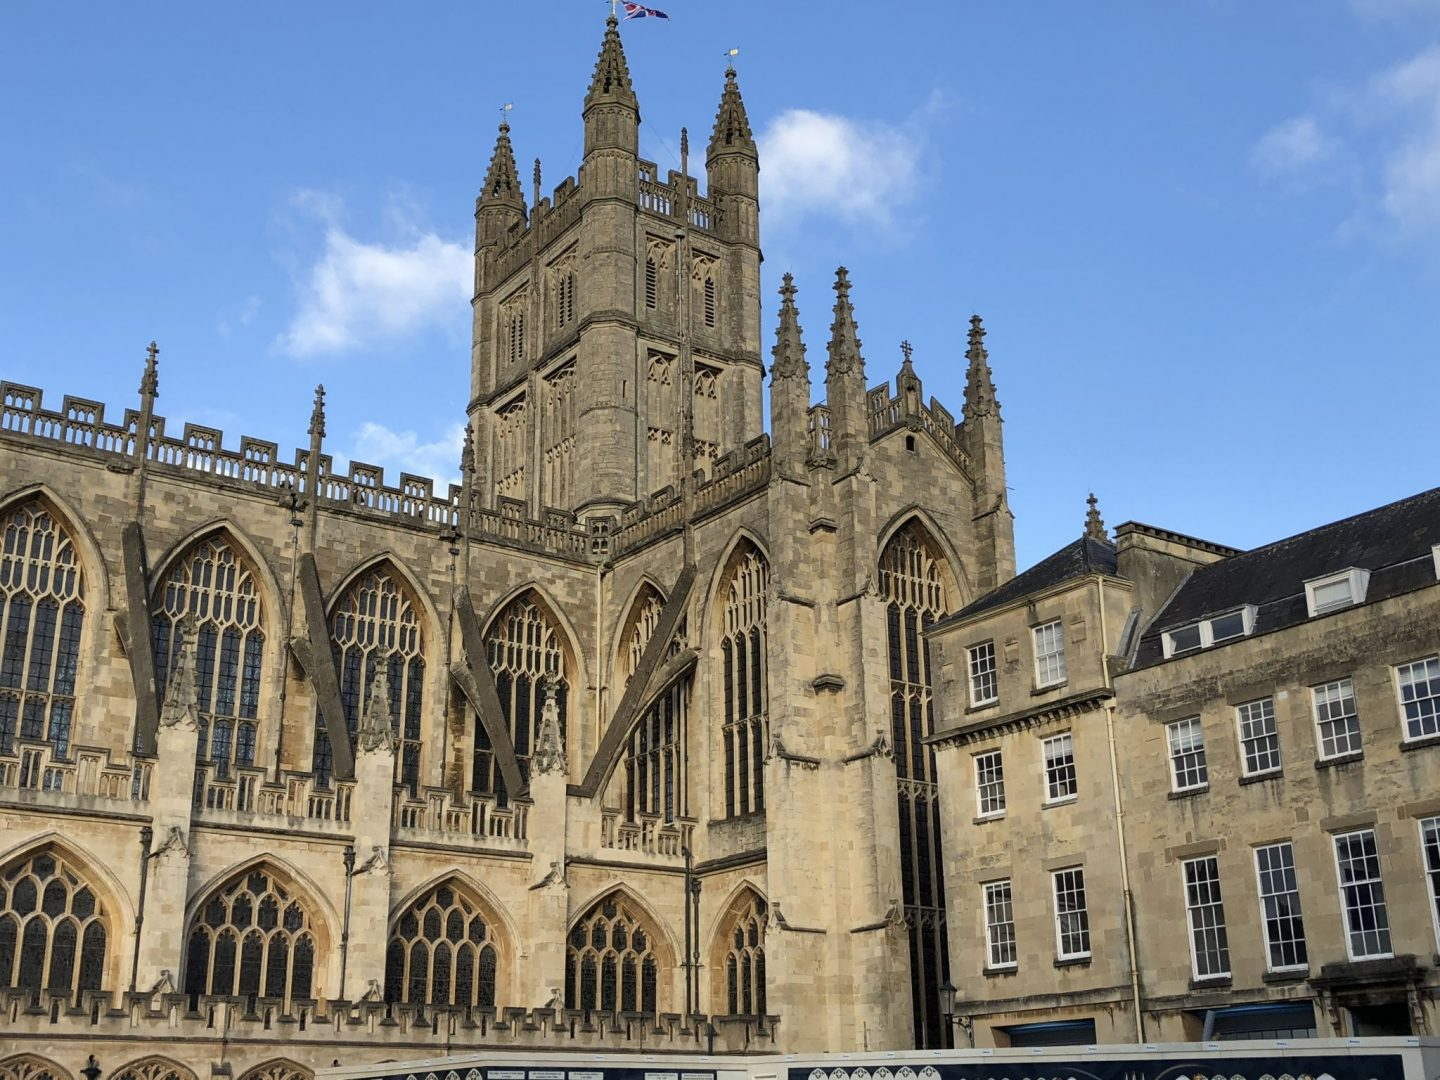 Things to do and see in Bath